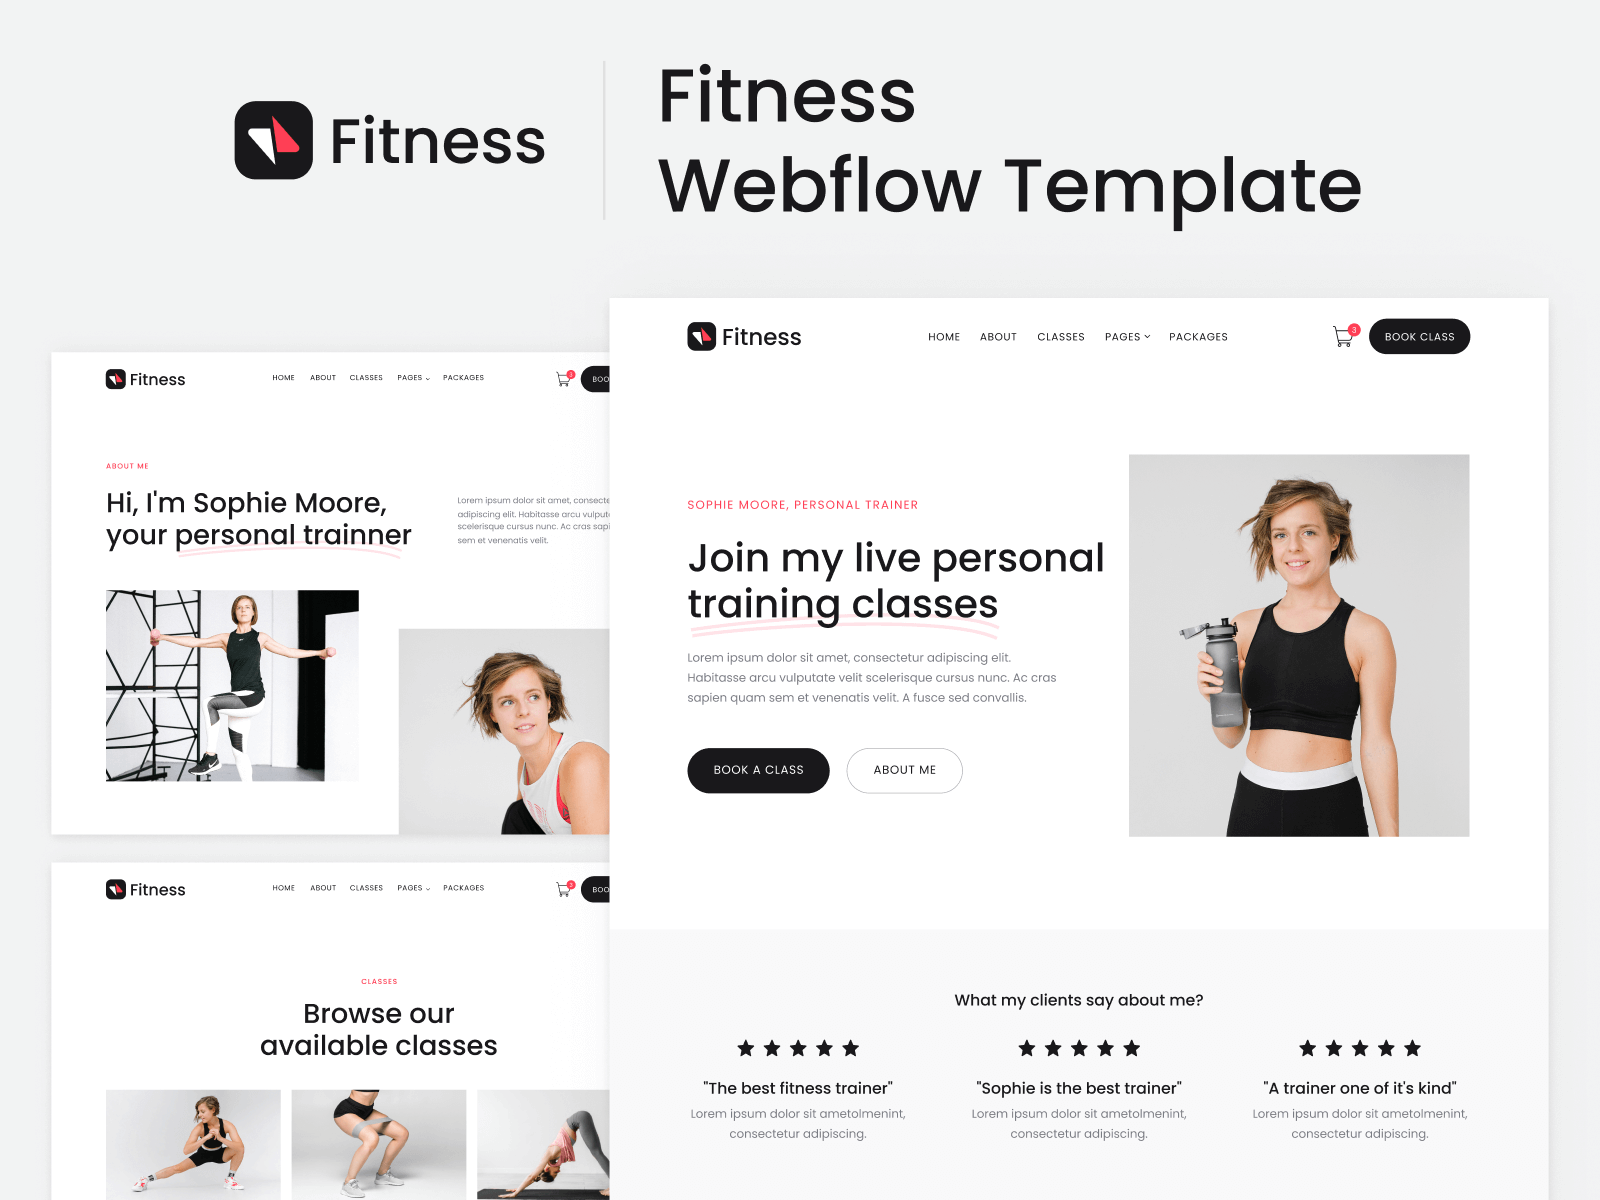 Fitness Webflow Template